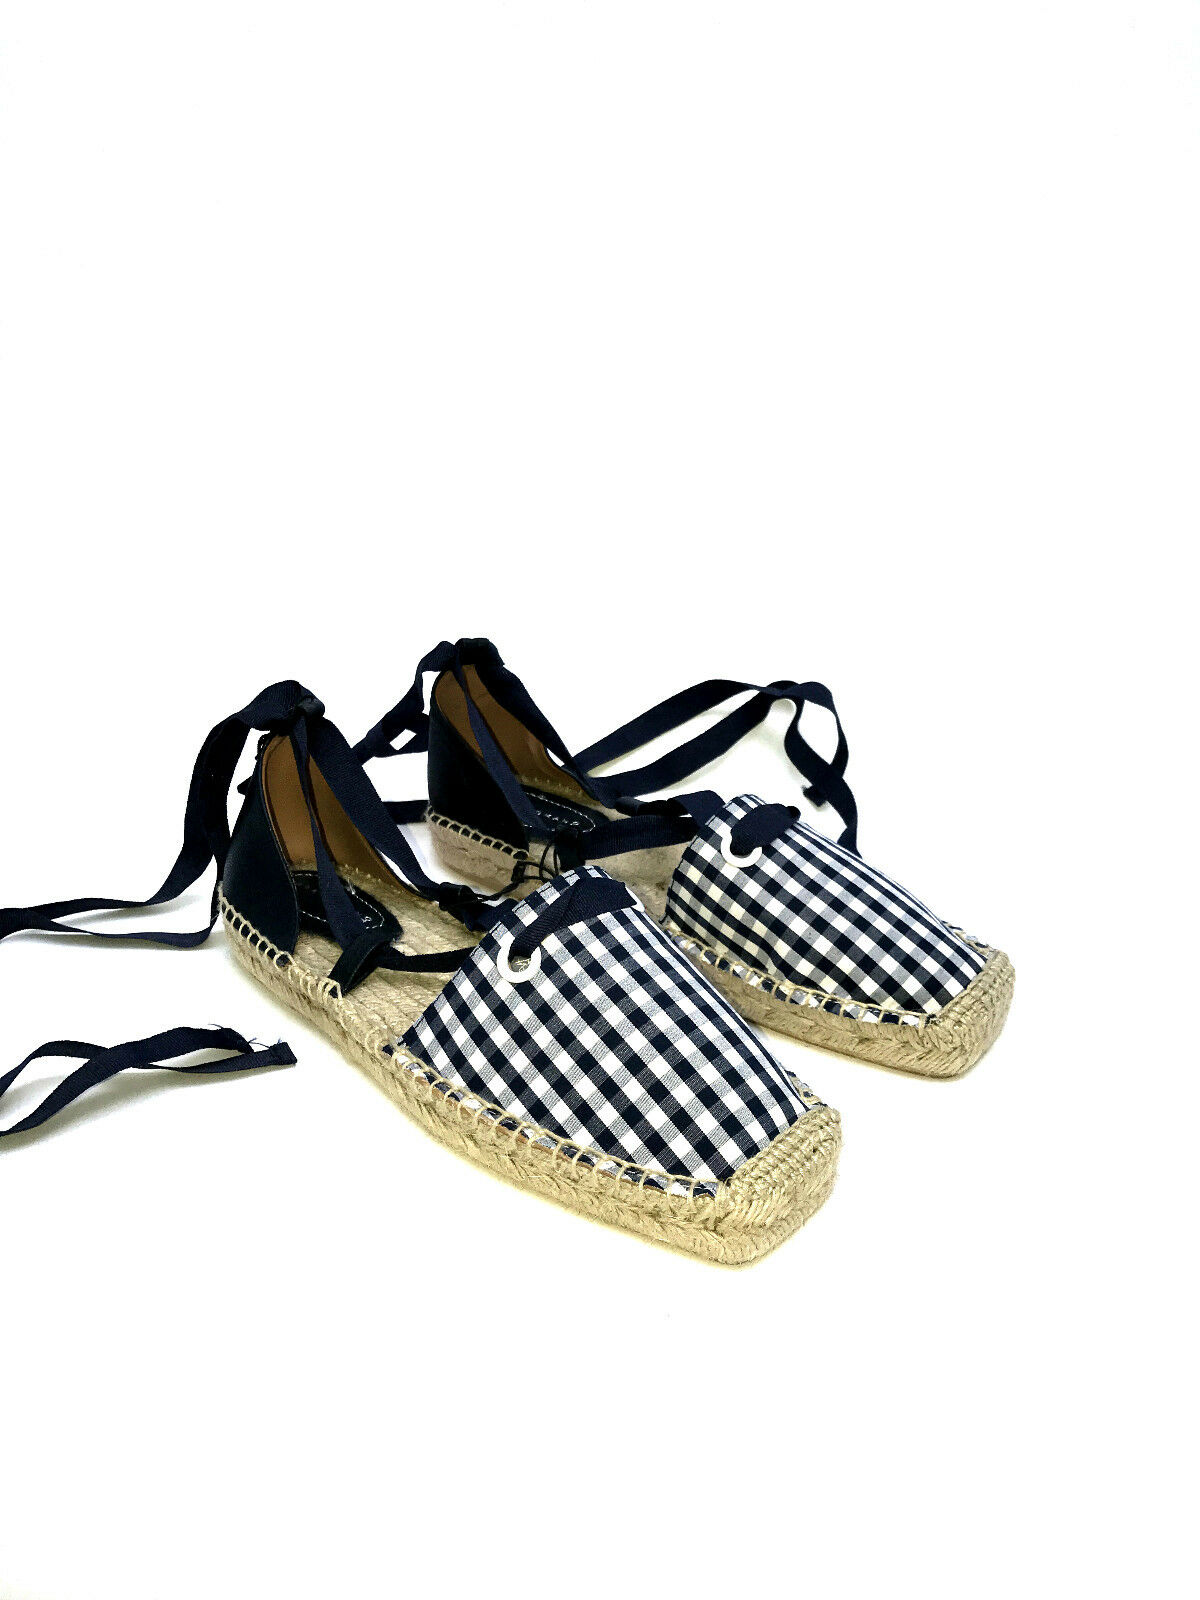 ZARA LACE-UP CHECK GINGHAM FABRIC ESPADRILLES FLAT Schuhe SIZE UK5 EUR38 US7.5